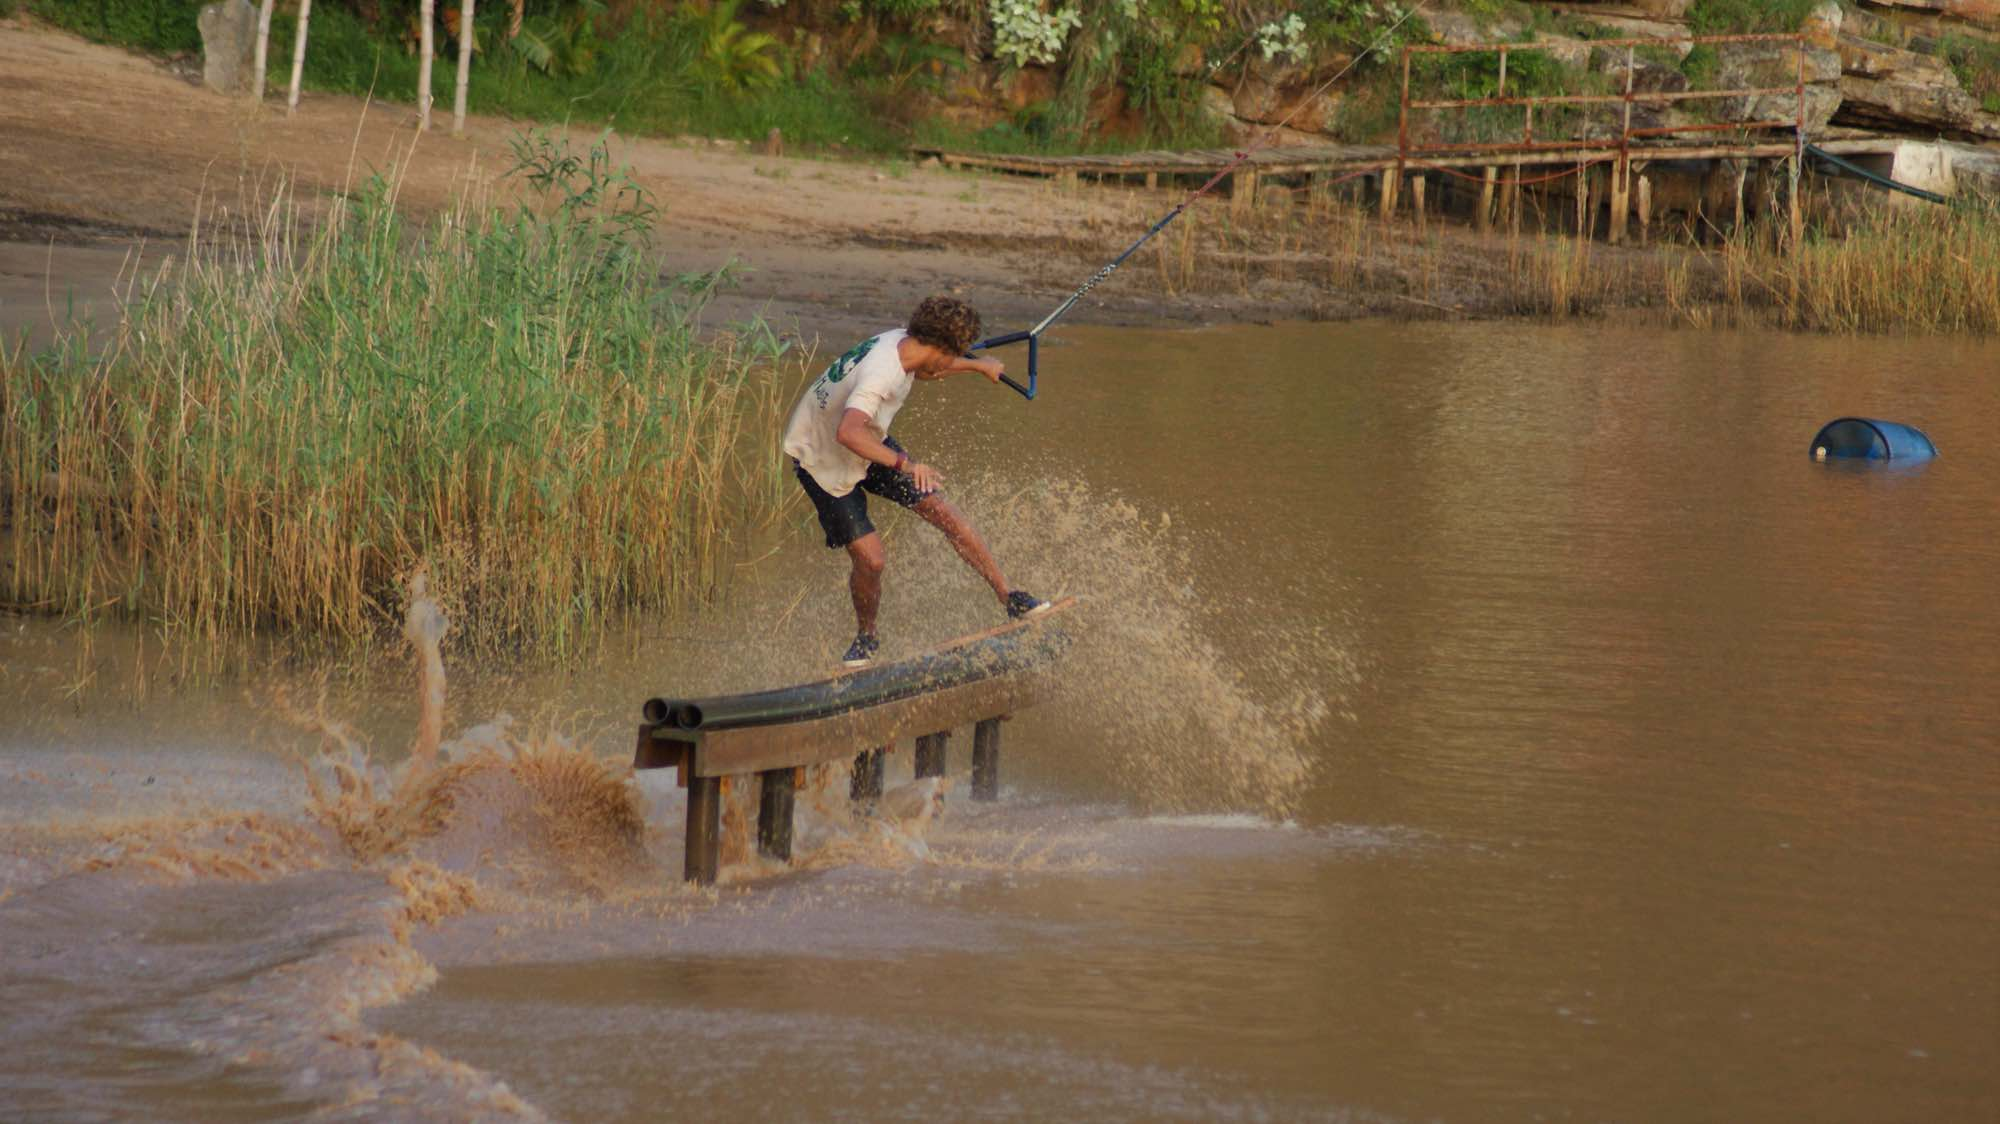 Matti Buys wake skating his way to victory at the 2018 Backyard Sessions